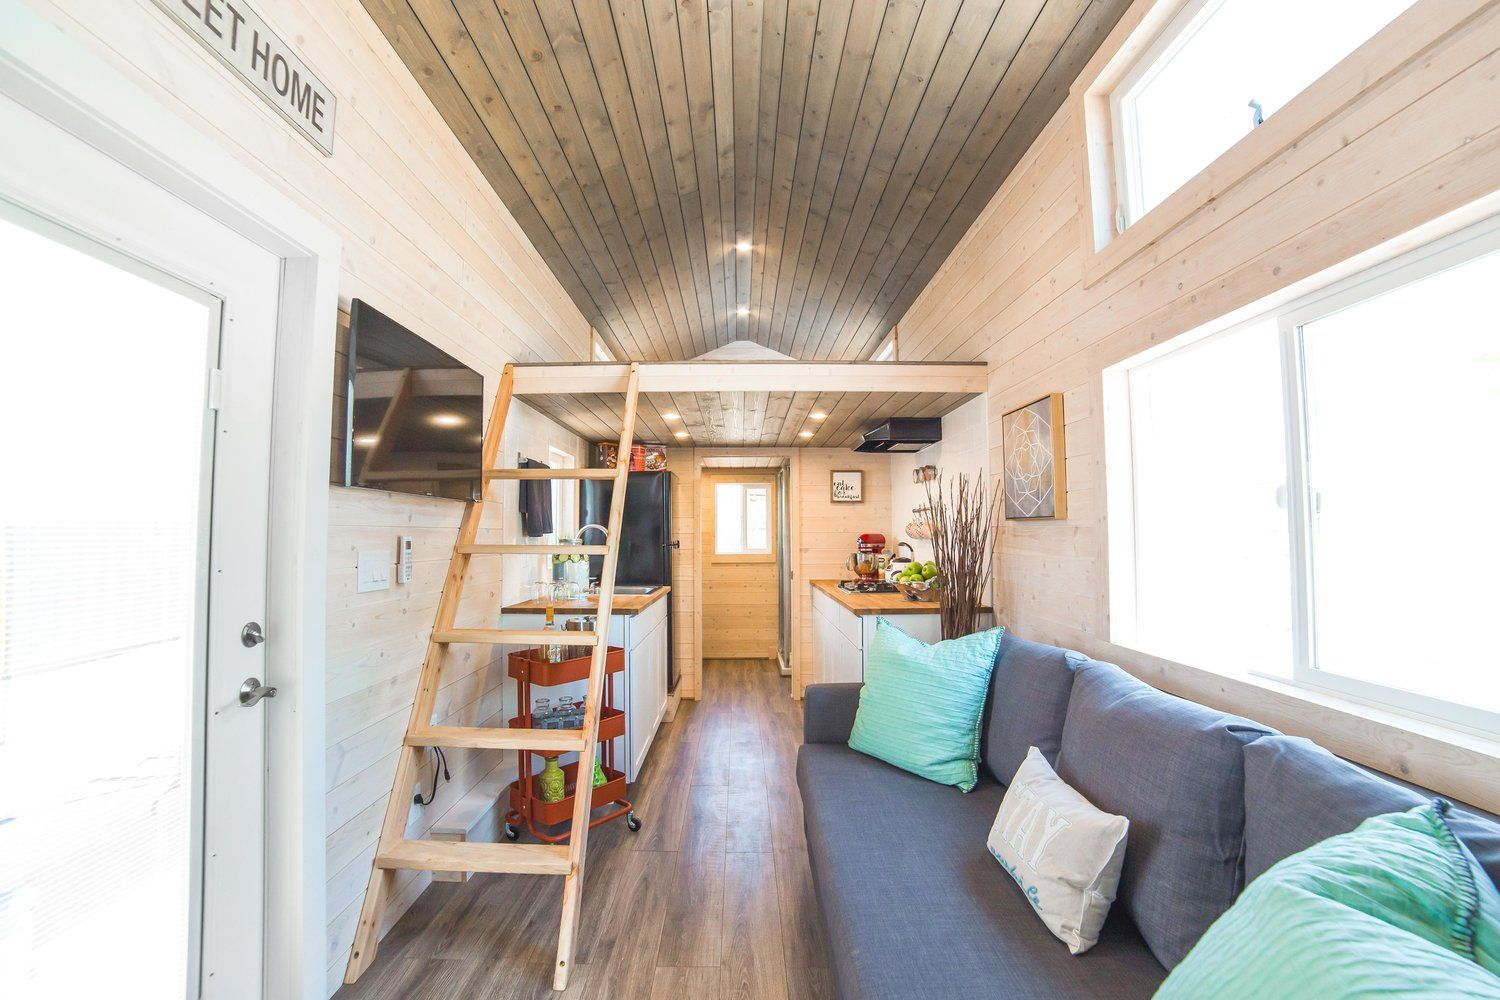 This is the Bunkhouse a new 310